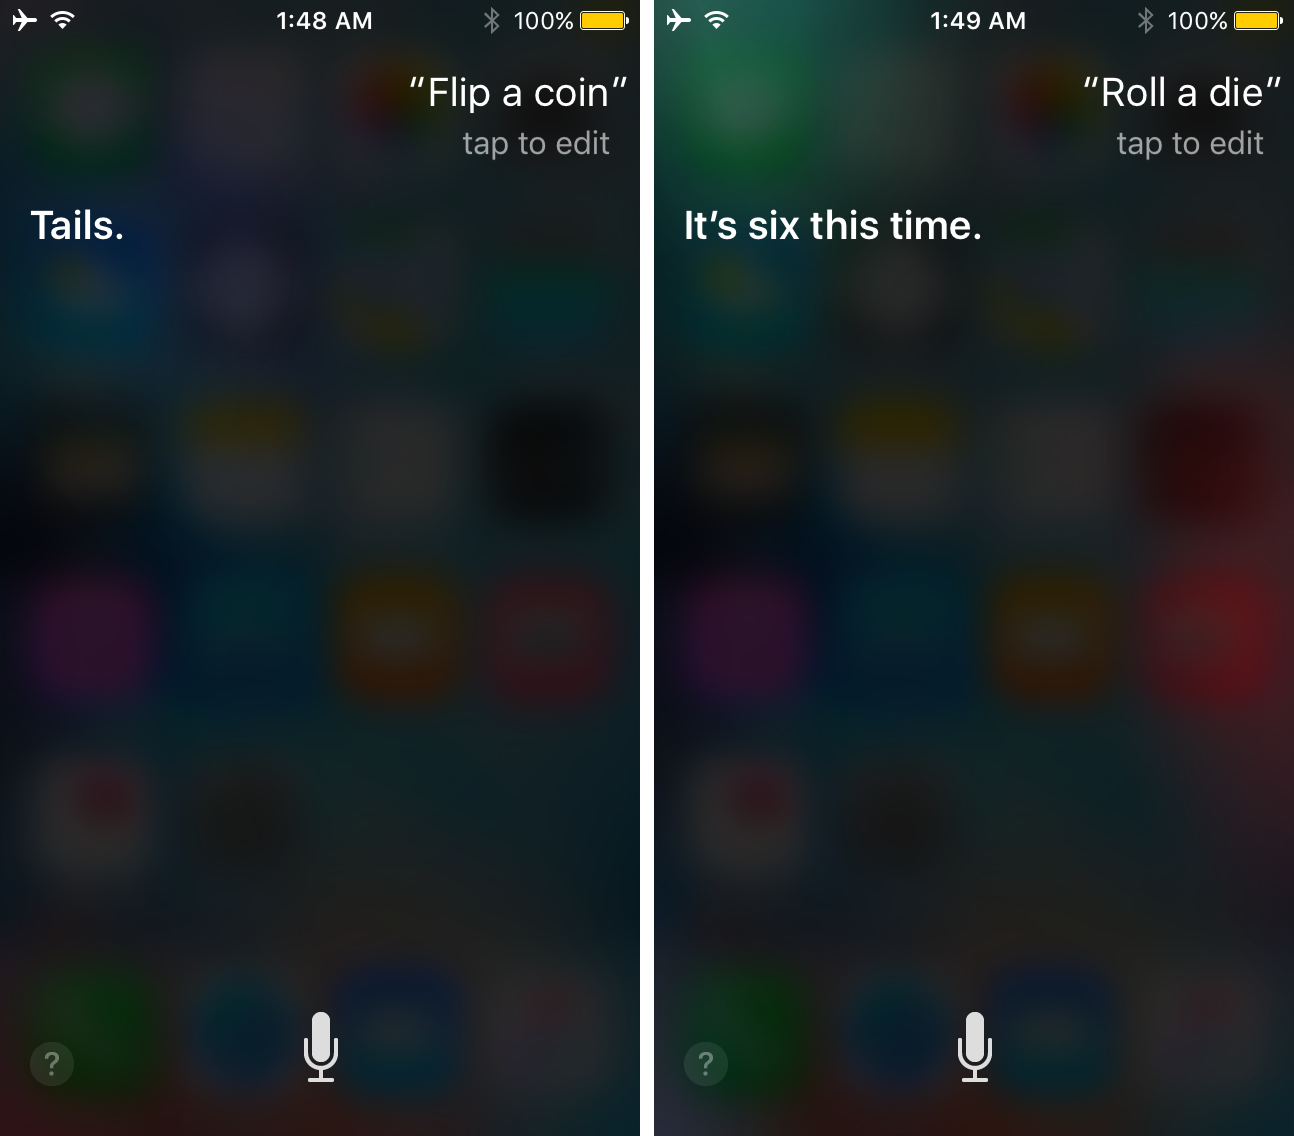 siri roll dice or flip coin